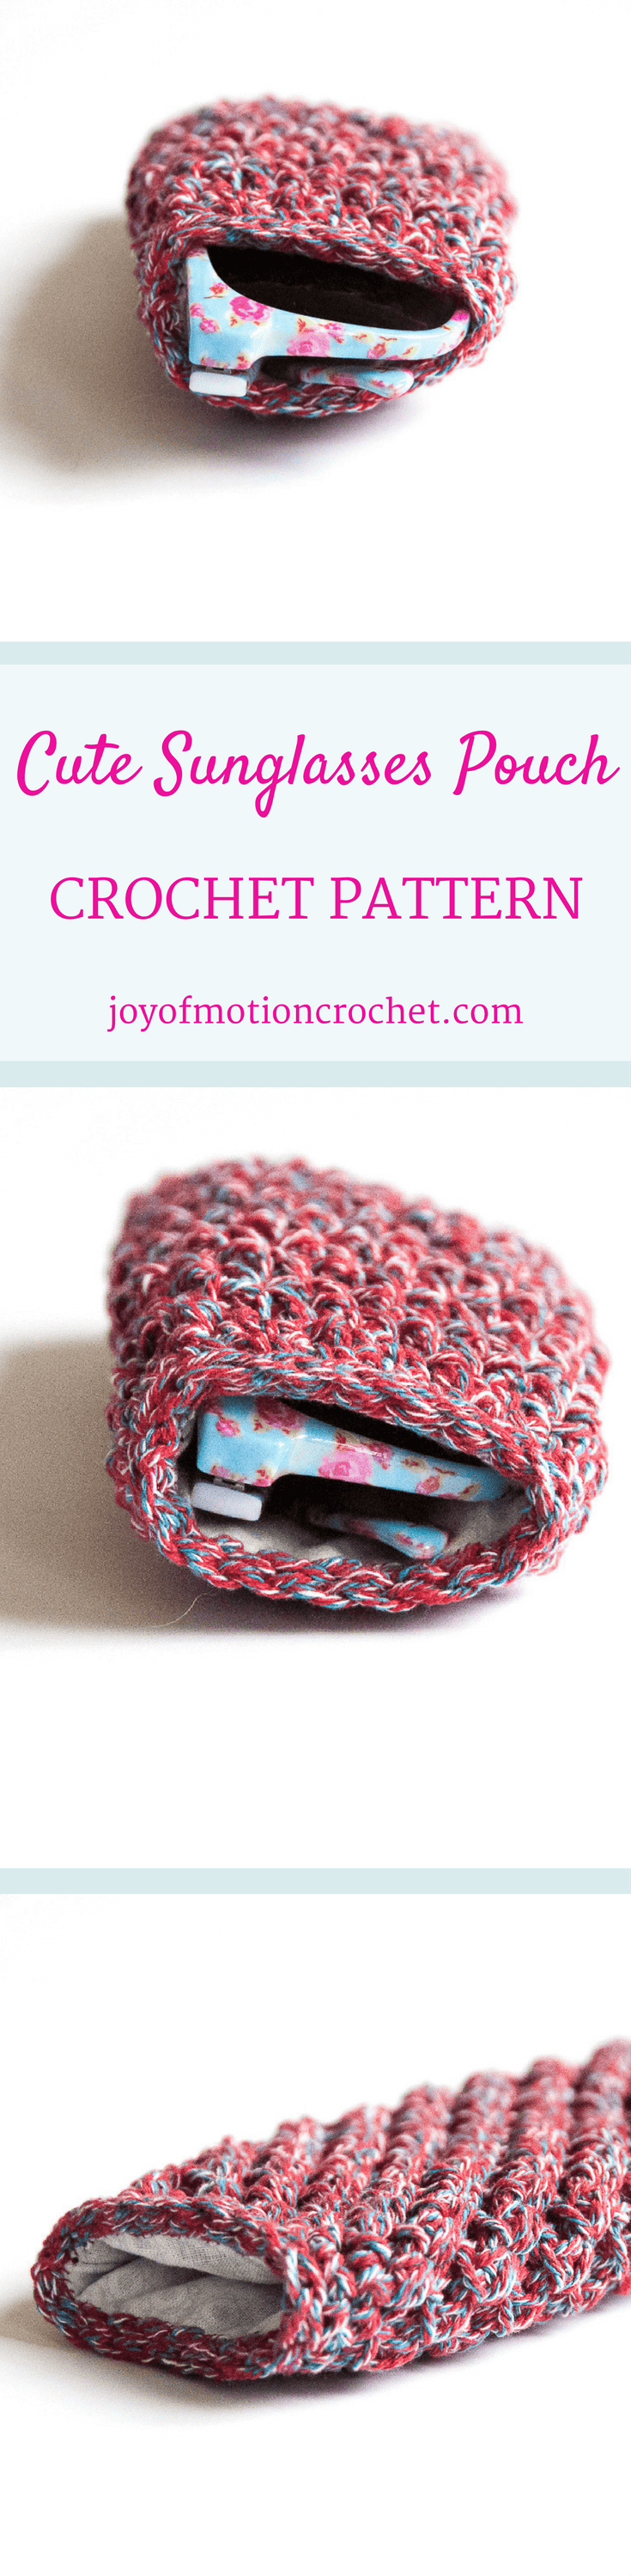 Cute Sunglasses Pouch Crochet Pattern | croche | Pinterest | Tejido ...